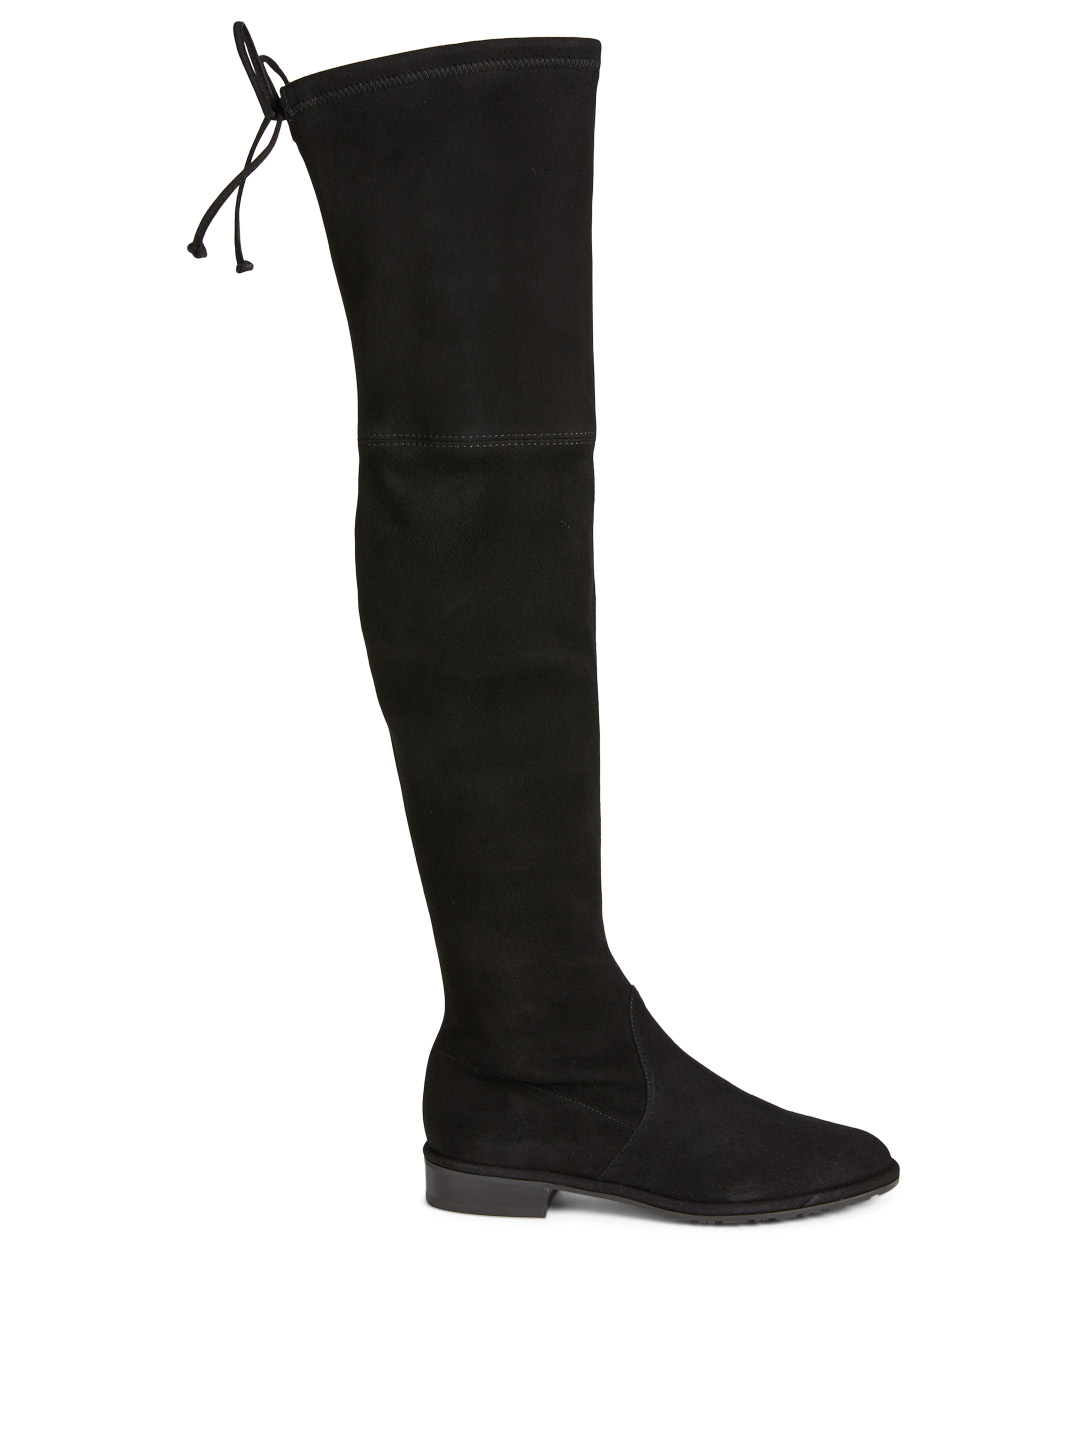 142cf0cb39ef STUART WEITZMAN. Lowland Suede Over-The-Knee Boots. $998. Item No 48837918.  Colour: Black